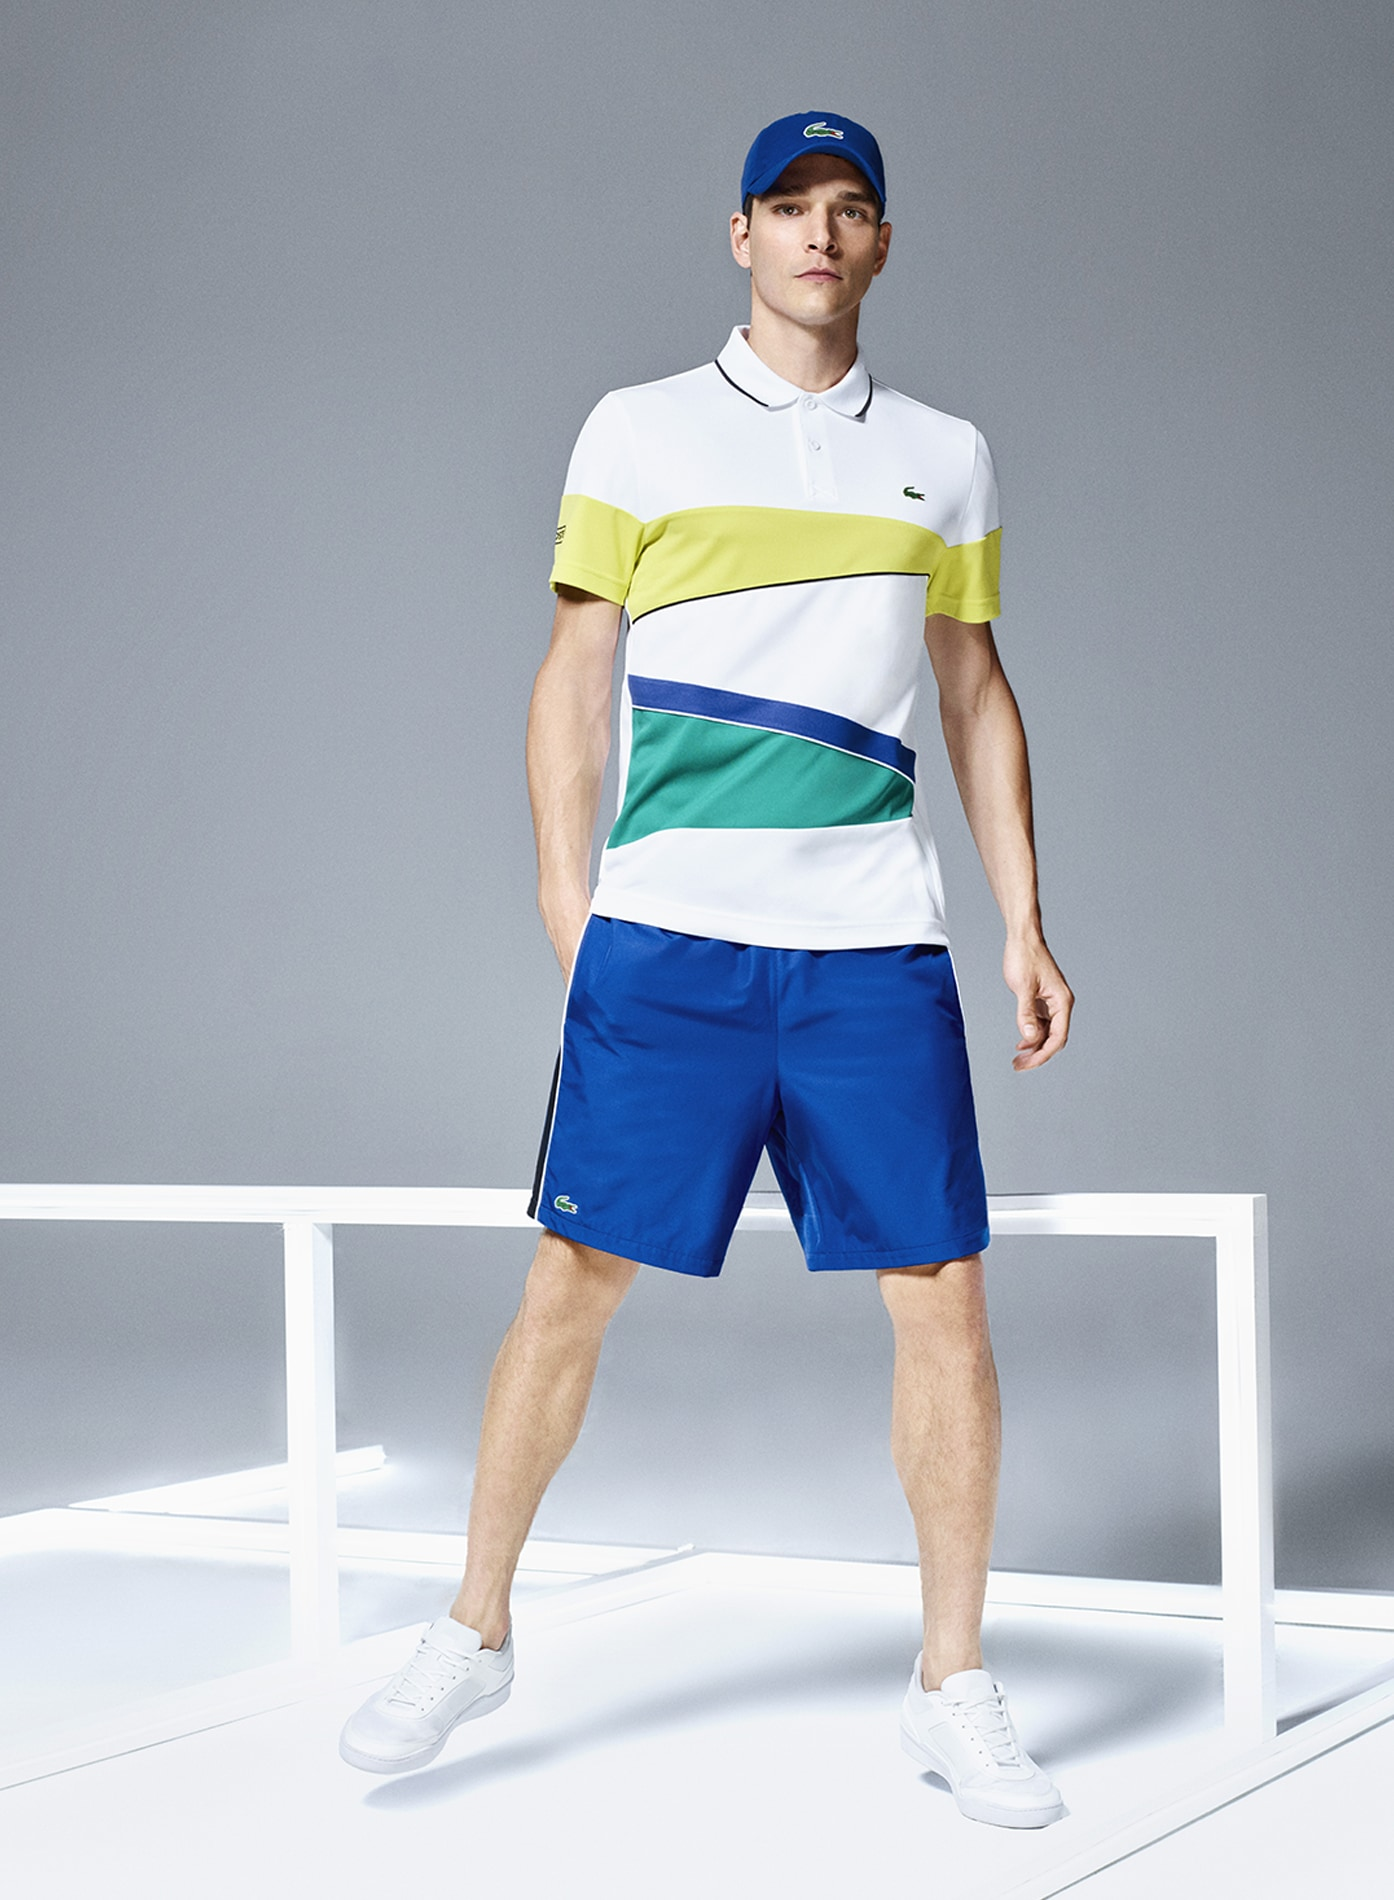 Springsummer CollectionLacoste The Springsummer Springsummer Sport 2017 Sport 2017 Sport 2017 CollectionLacoste The The nvNOm0w8